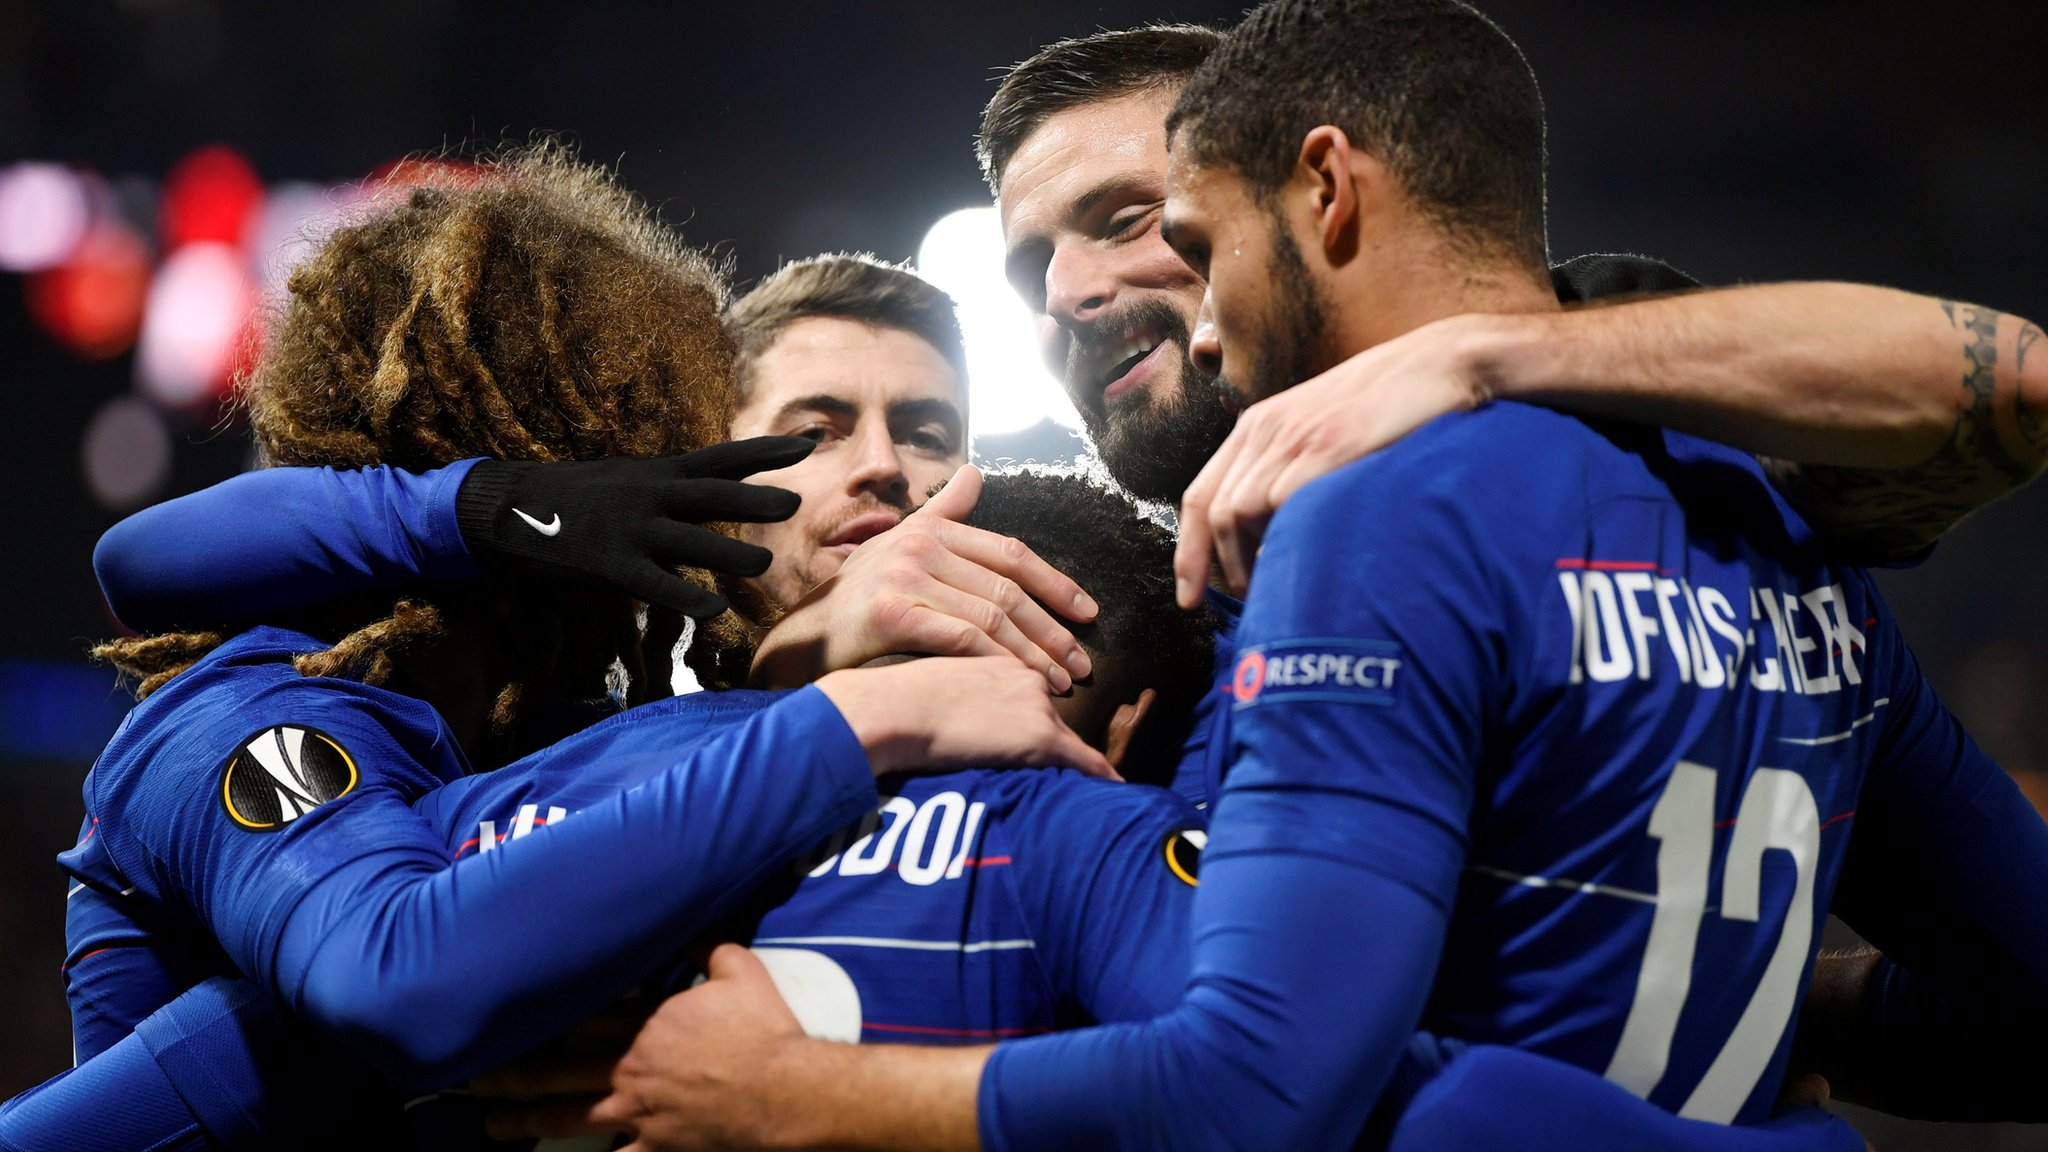 Chelsea 3-0 Malmo (5-1): Callum Hudson-Odoi scores as Blues reach last 16